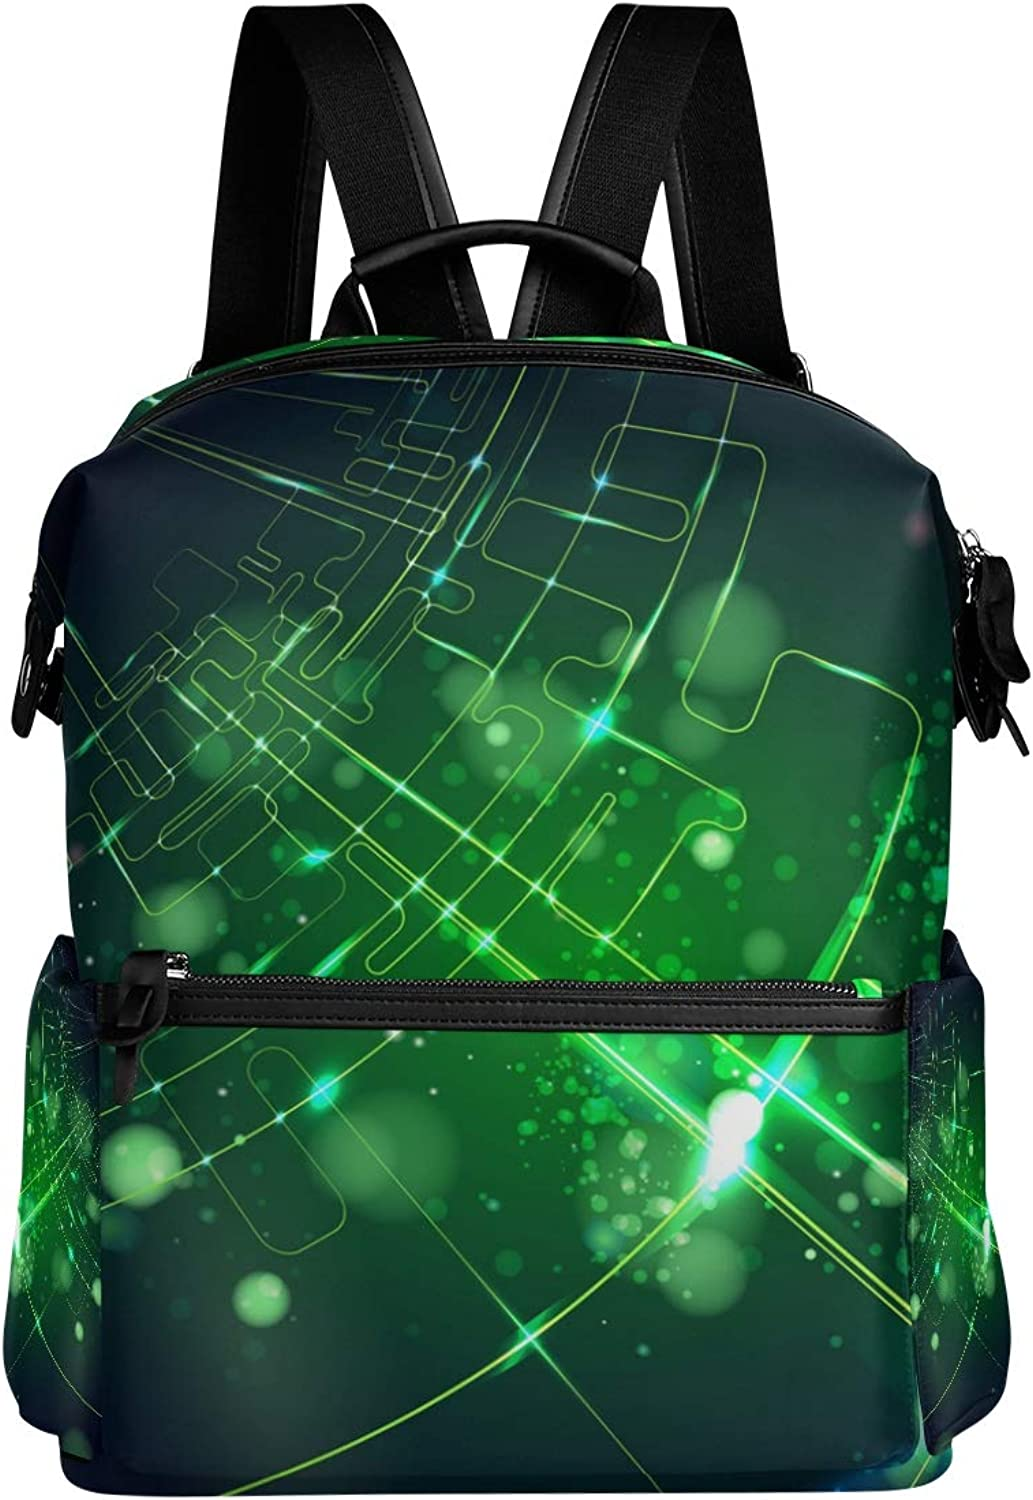 MONTOJ Green High Tech Light Pattern Leather Travel Bag Campus Backpack